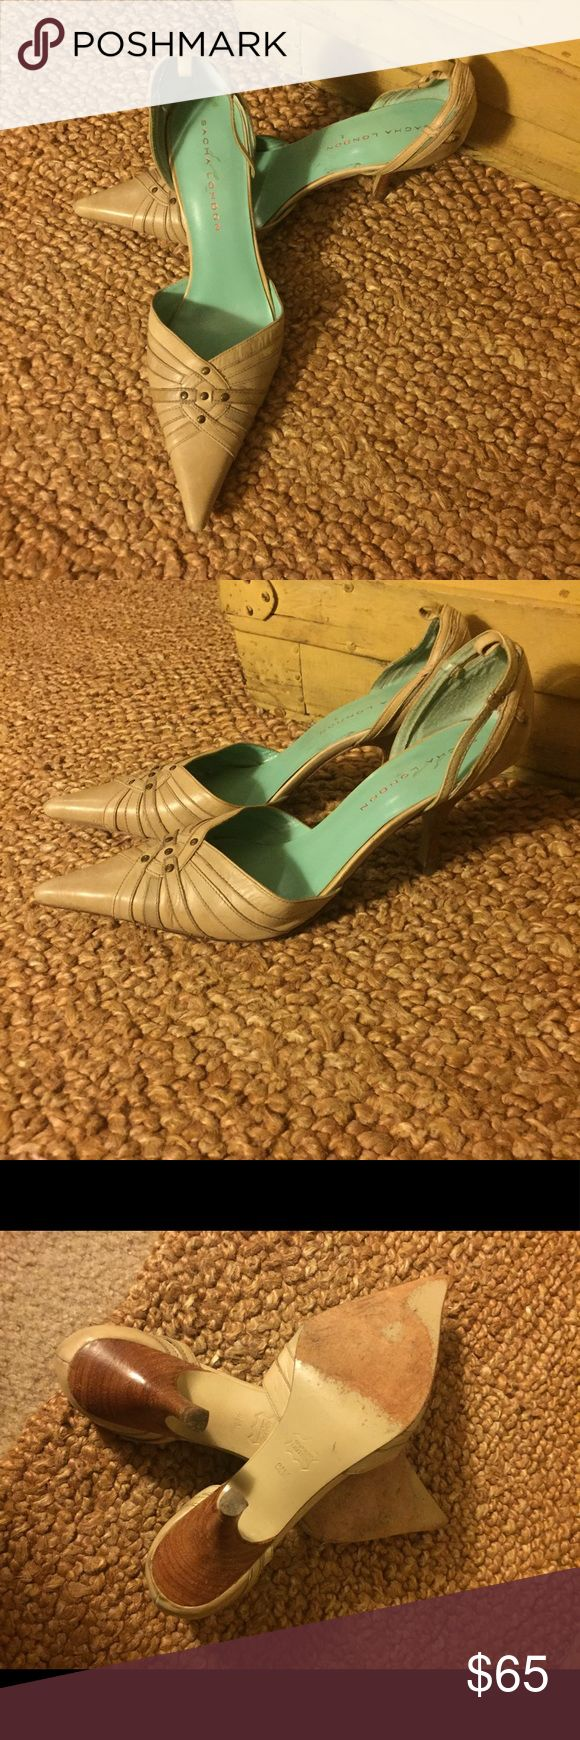 Sacha London BRAND Tan leather point high heel 8.5 Open to all reasonable offers-COMBINED SHIPPING DISCOUNT FOR MULTIPLE ITEMS. All items come from a CLEAN, SMOKE-FREE home Anthropologie Shoes Heels